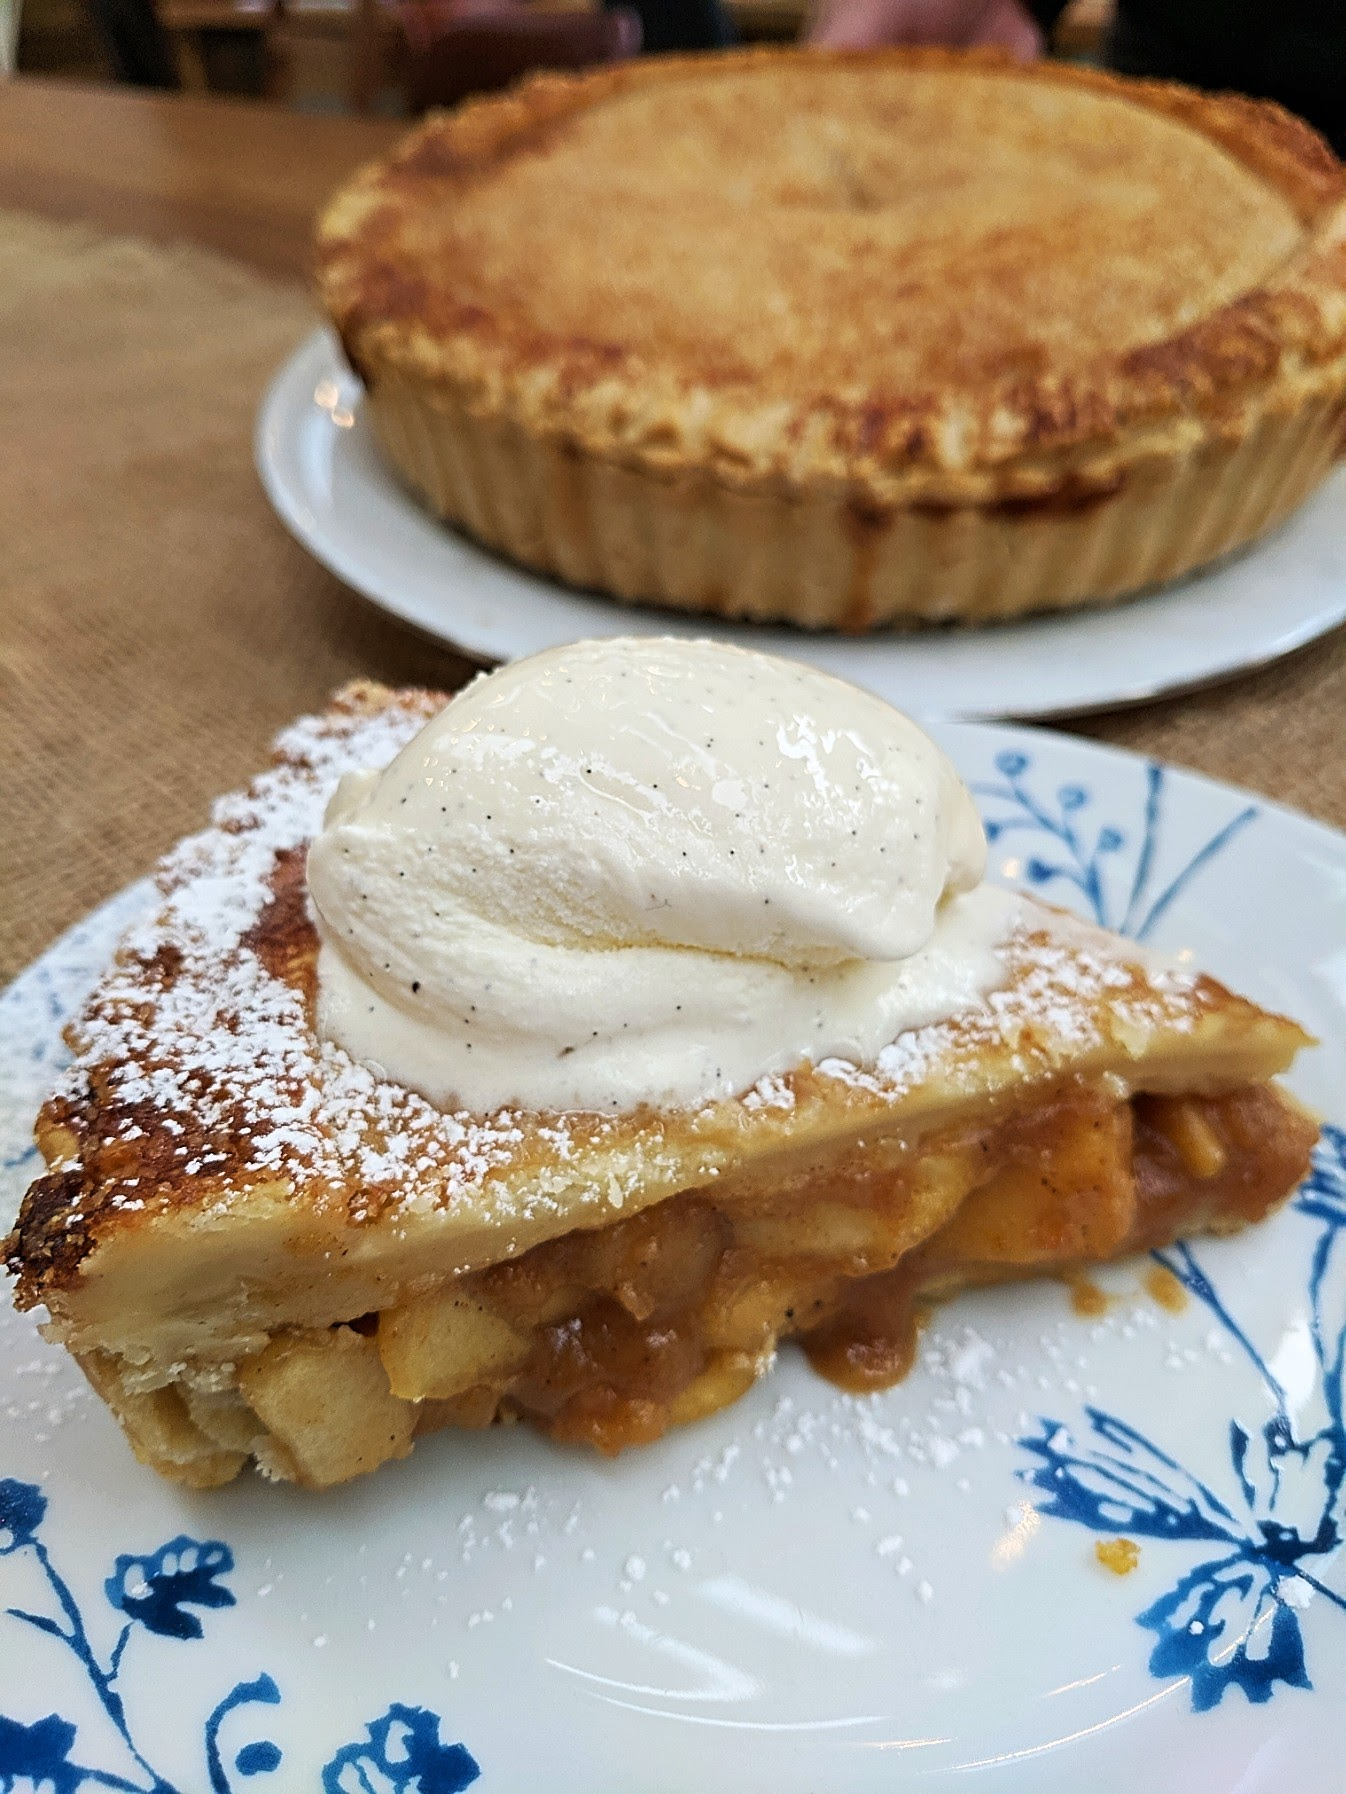 Delicious apple pie